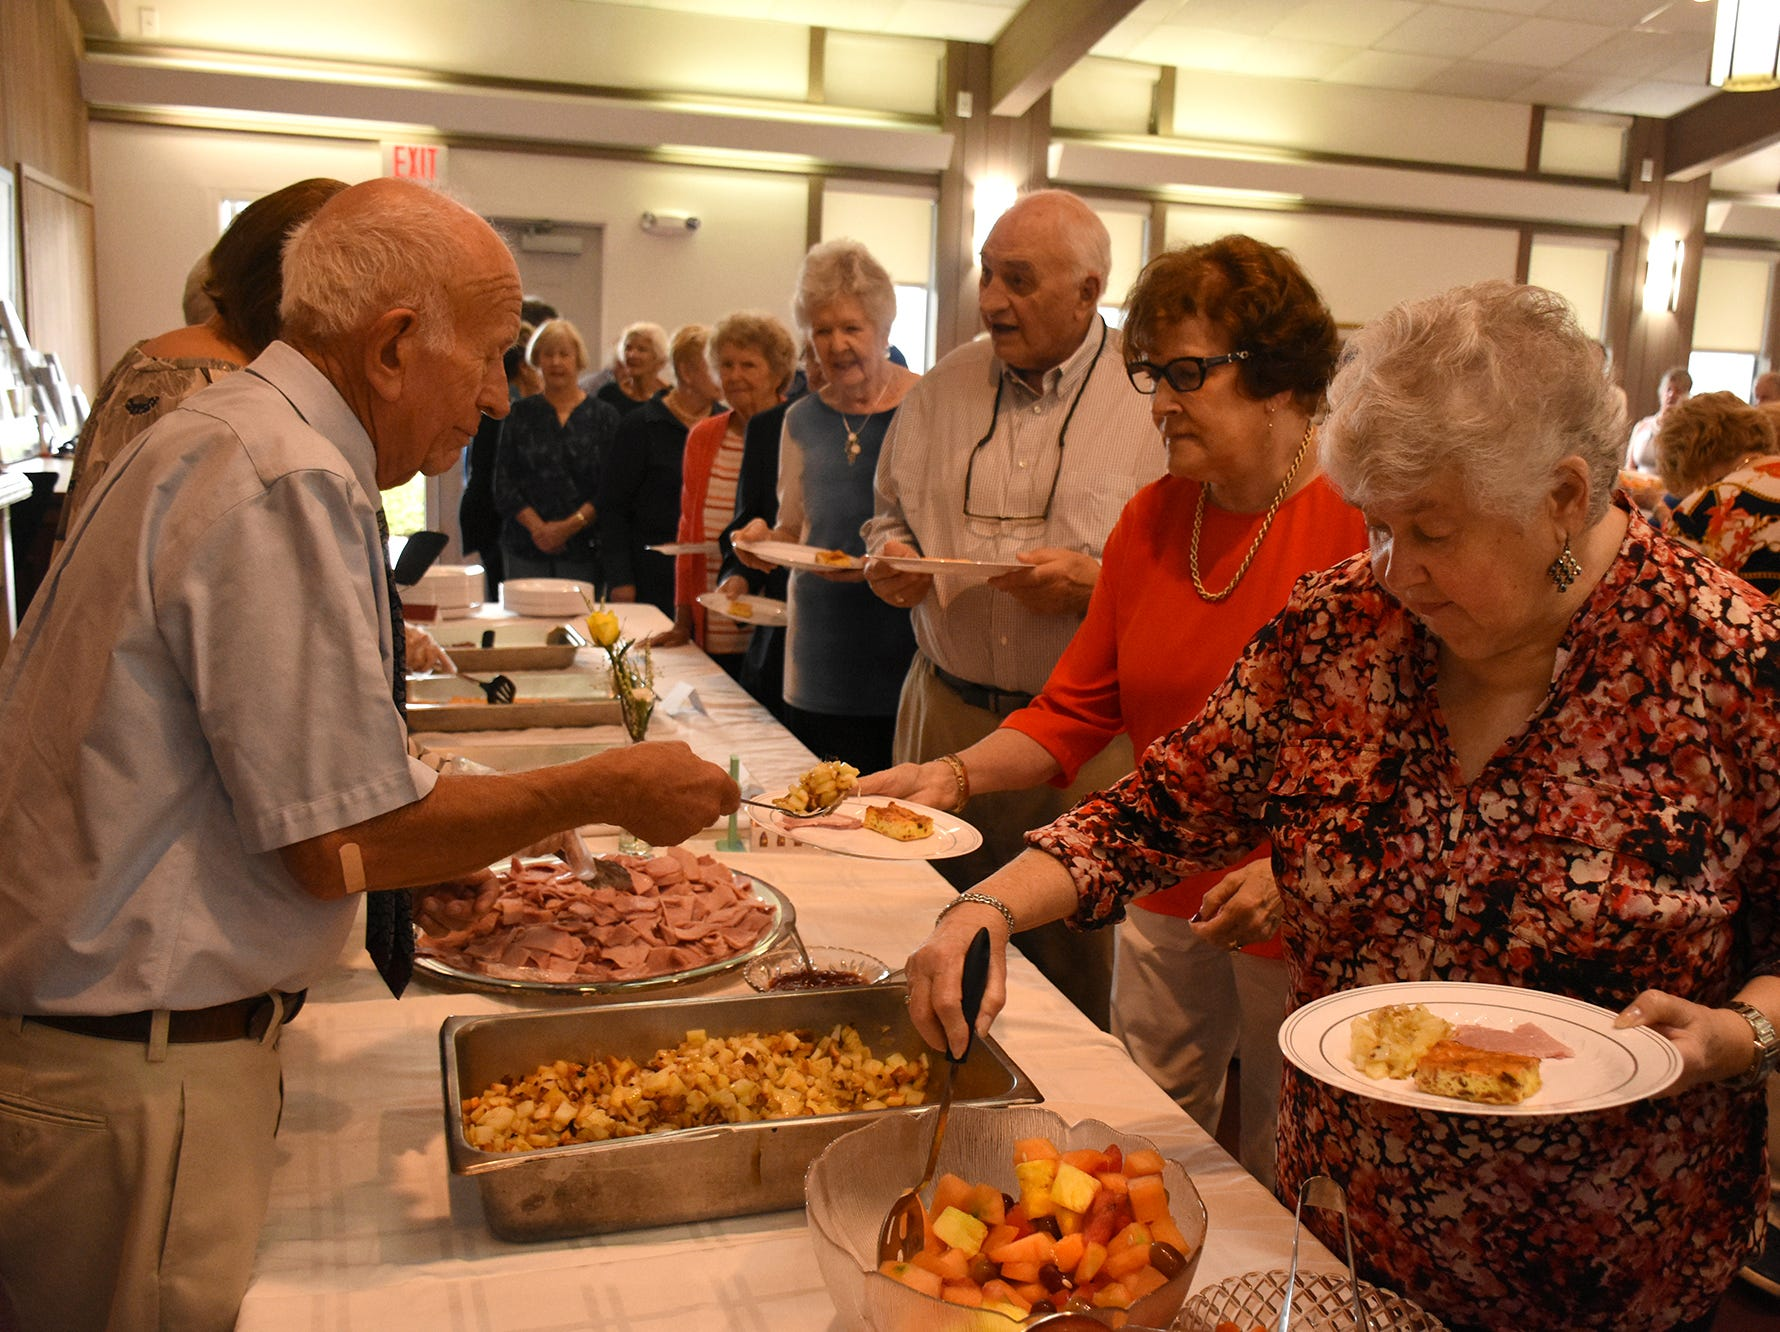 Paul O'Neill serves breakfast as Yvonne Hall gets some fruit at the brunch following the dedication. United Church of Marco Island held a ceremony Sunday dedicating their newly erected steeple, which was damaged during Hurricane Irma.United Church of Marco Island held a ceremony Sunday dedicating their newly erected steeple, which was damaged during Hurricane Irma.